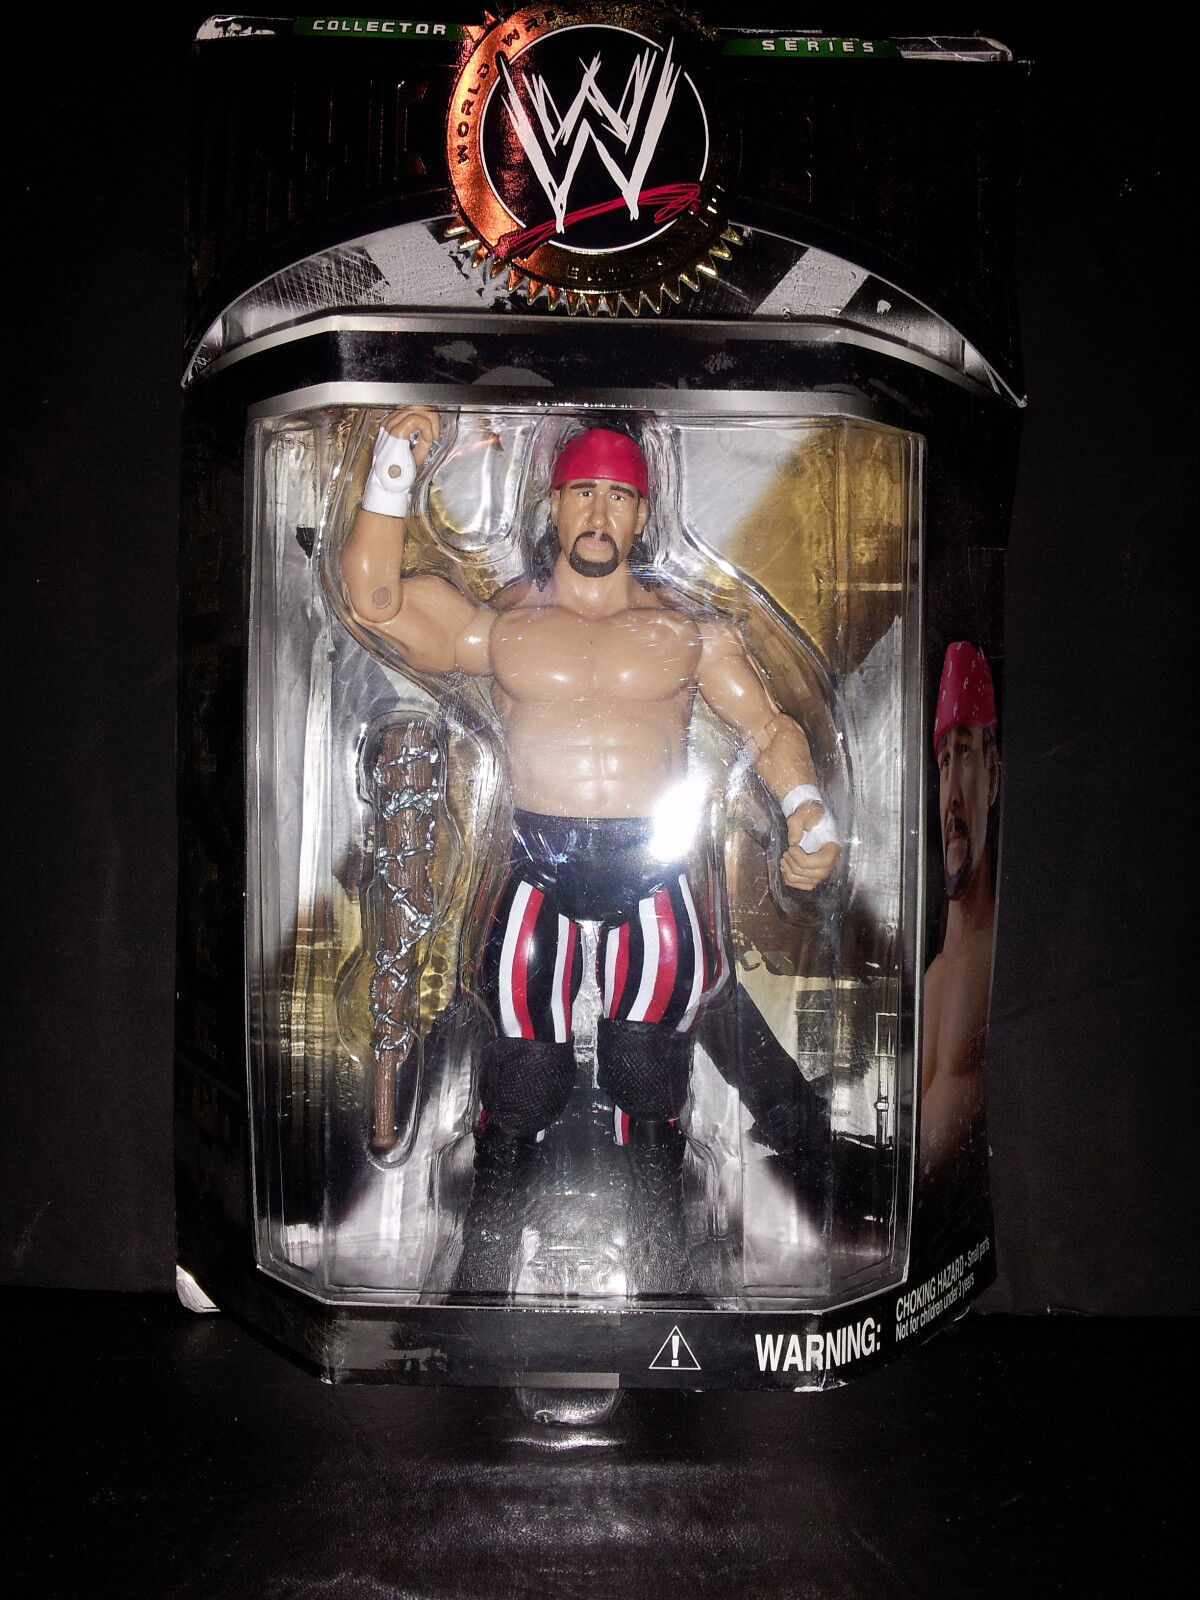 TERRY FUNK WWF WWE CLASSIC SUPERSTARS NIP JAKKS FREE SHIPPING